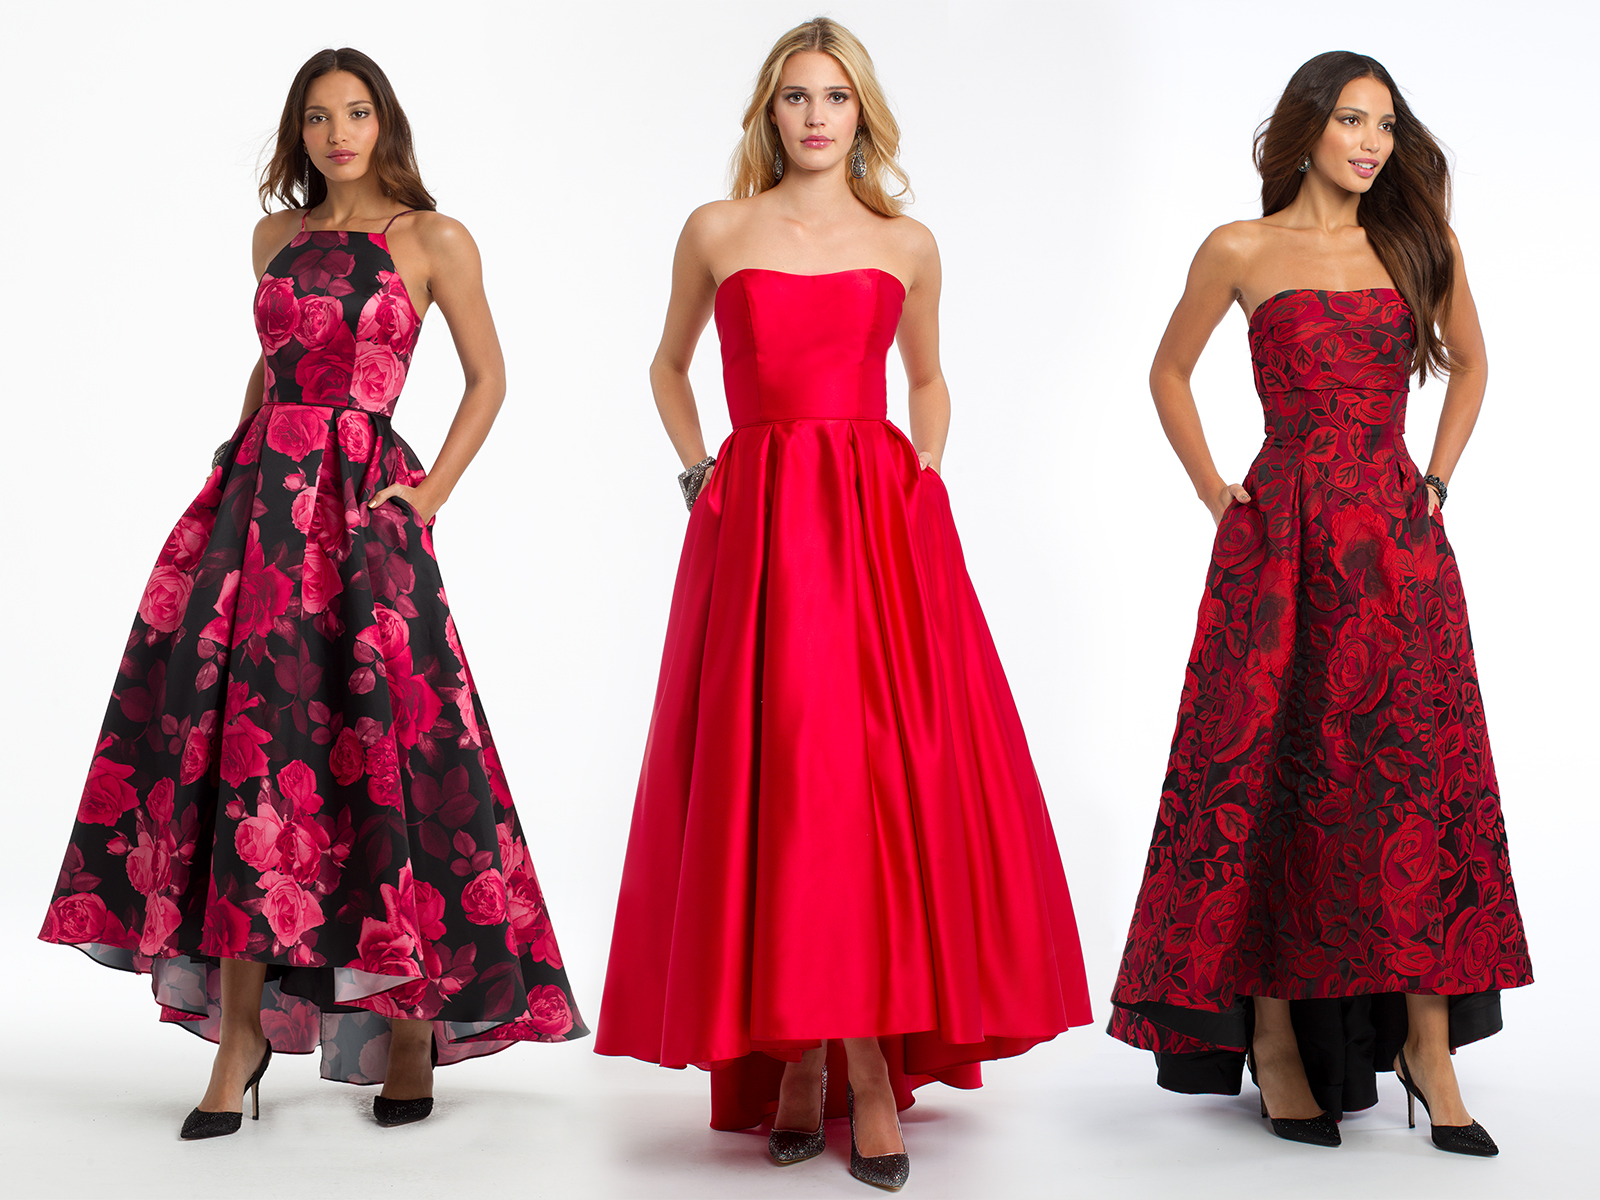 Find A High-Low Dress For Your Next Wedding